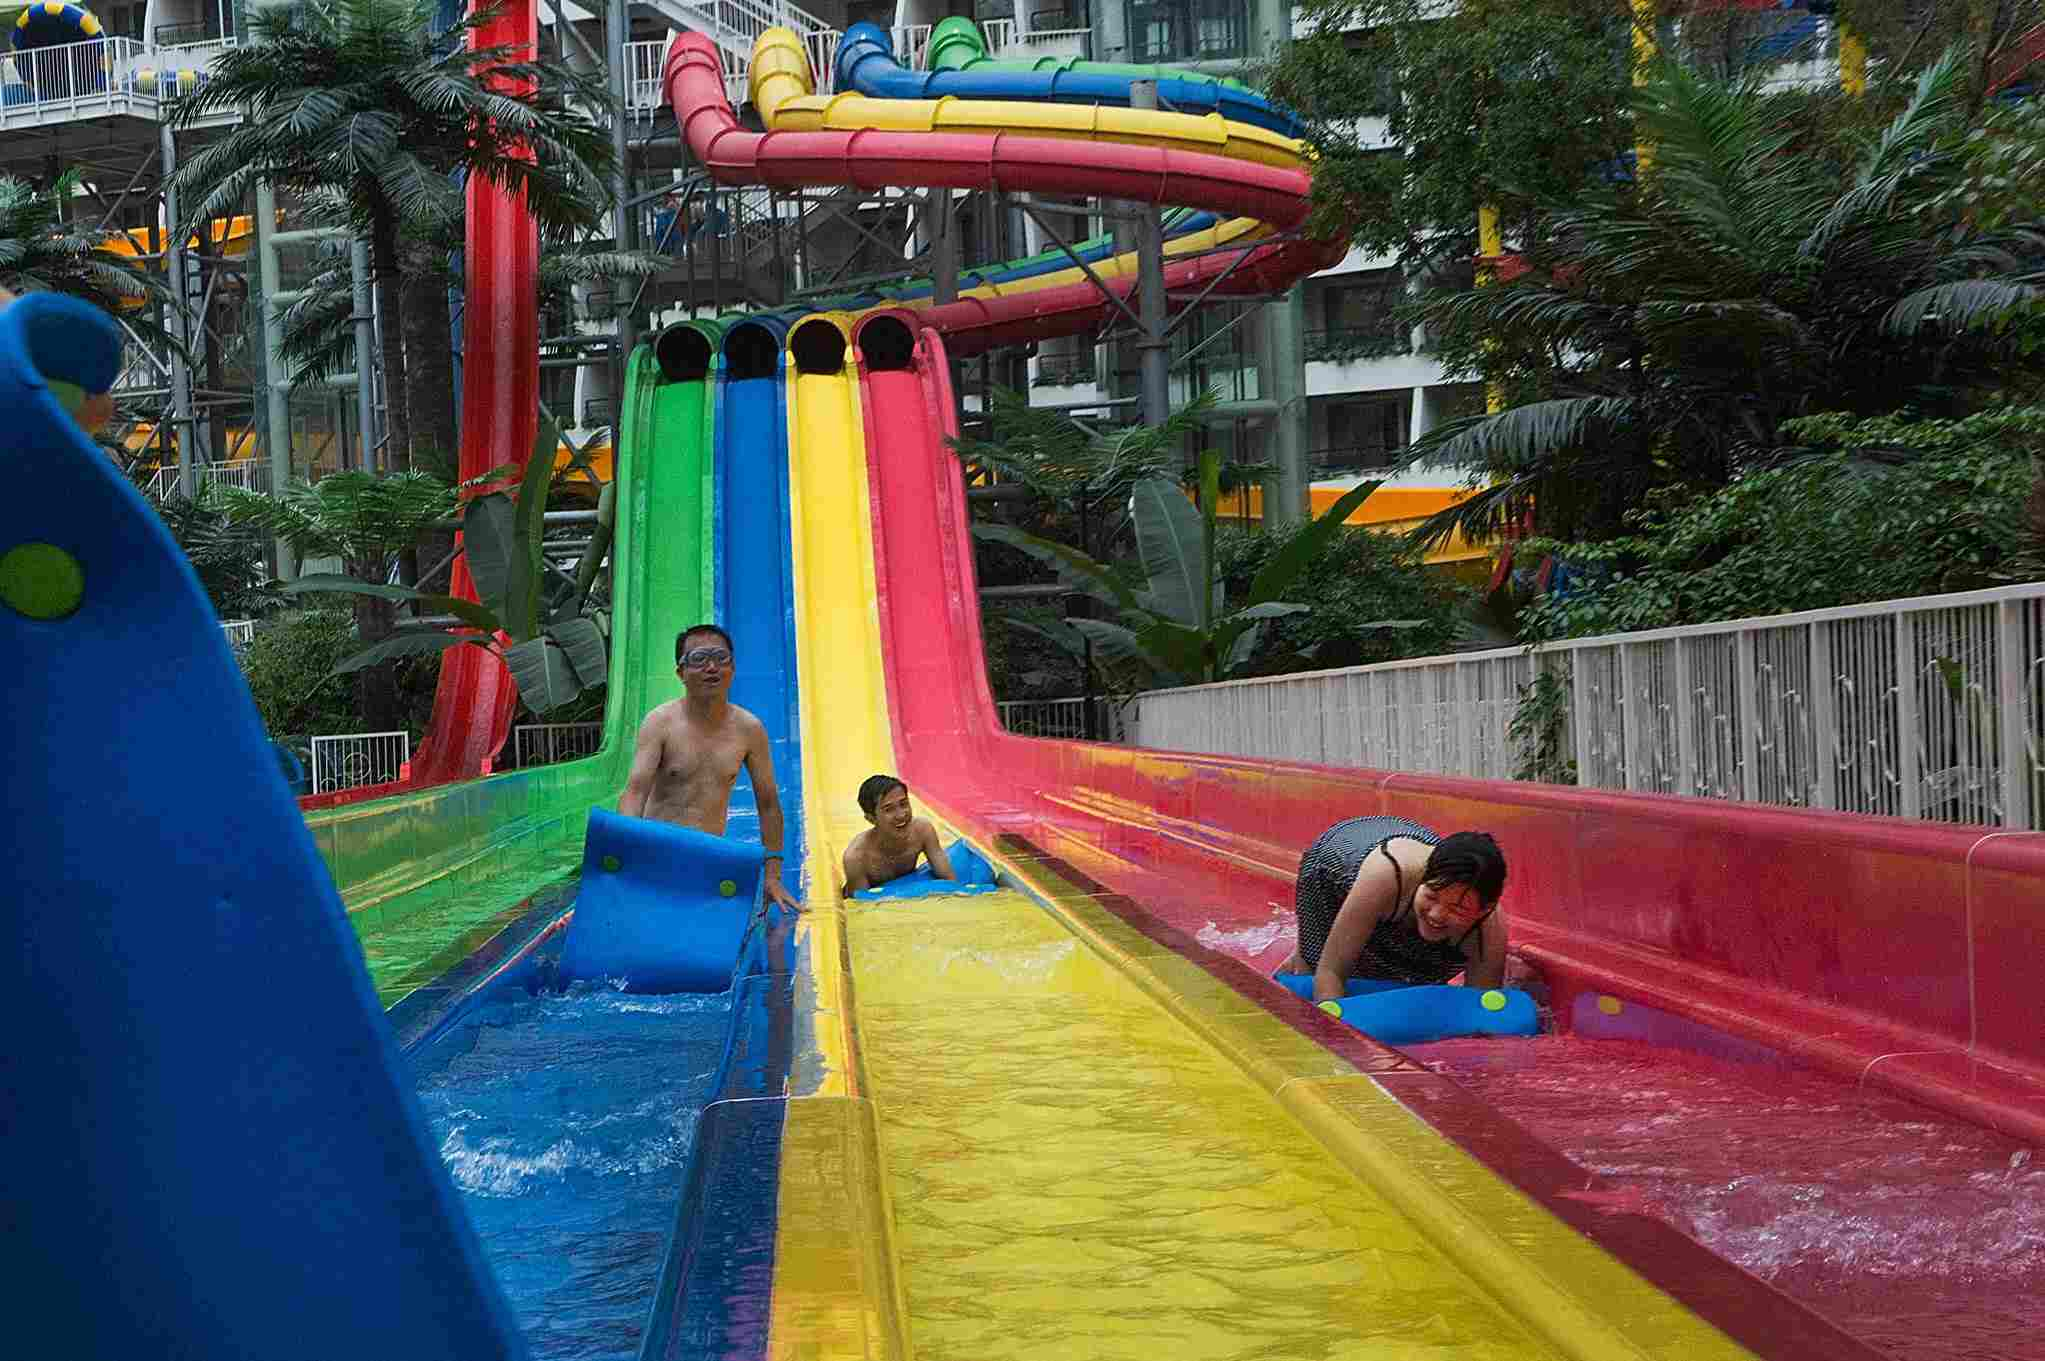 Water Slides at the Paradise Island Water Park inside the New Century Global Center